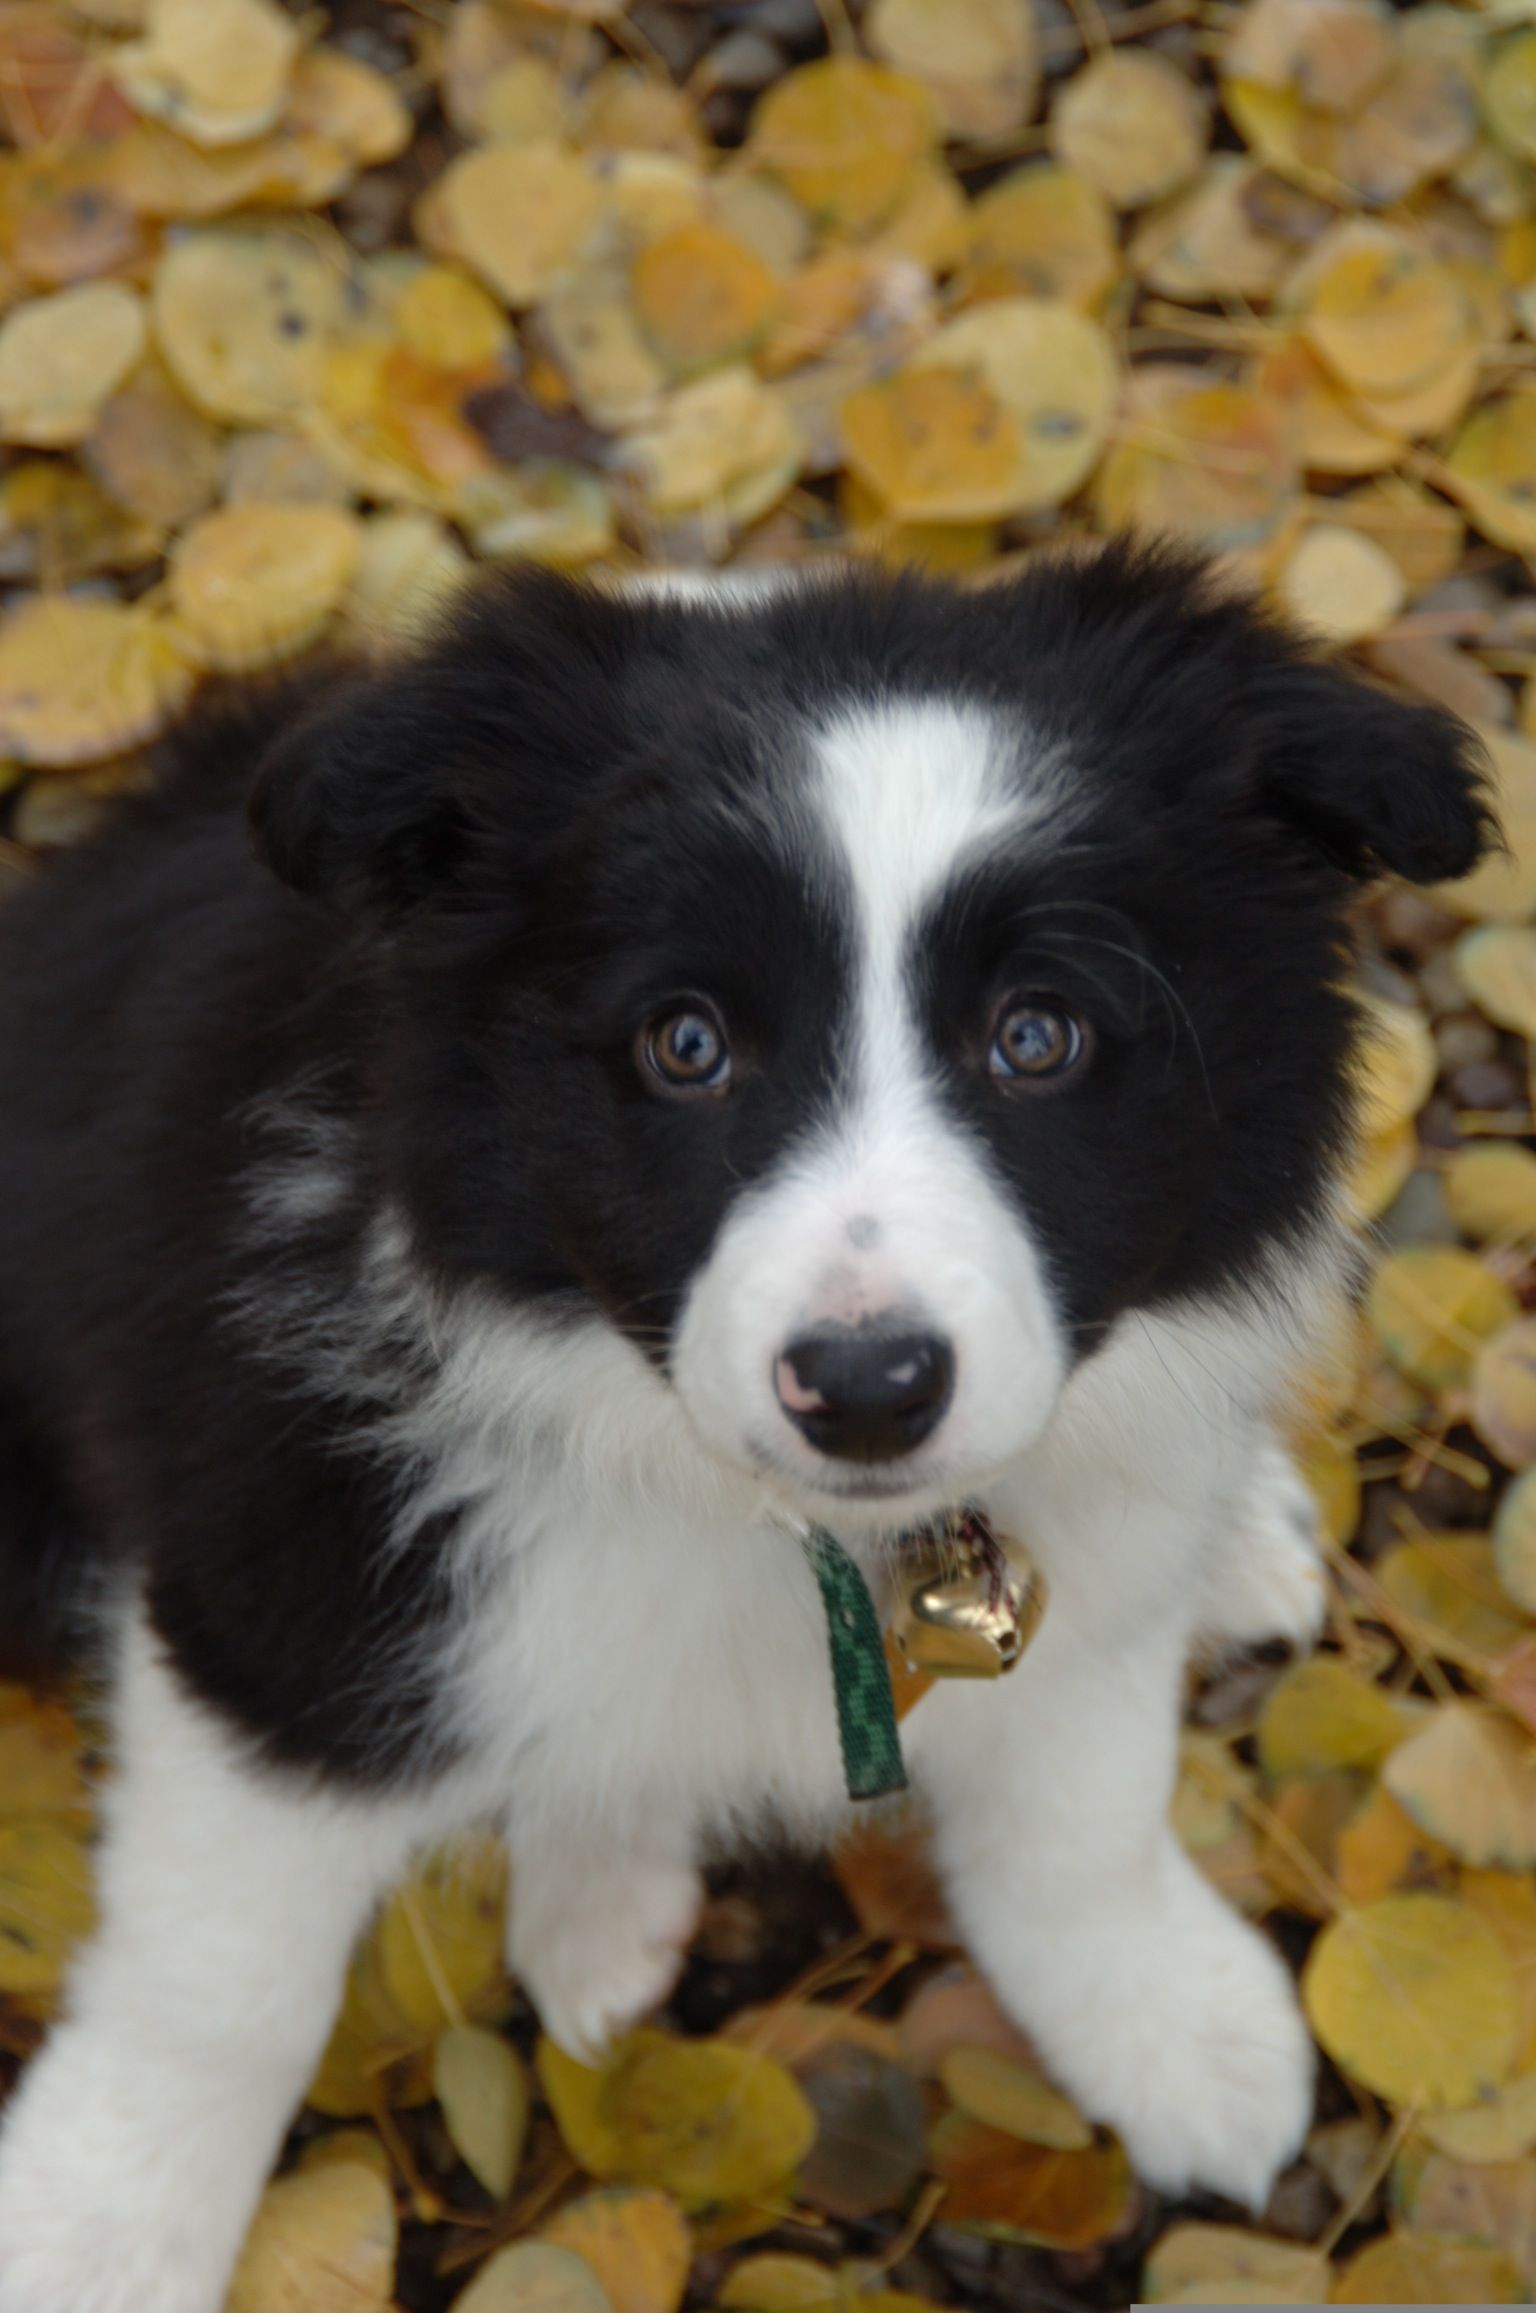 Allie in the autumn adorable border collie puppy